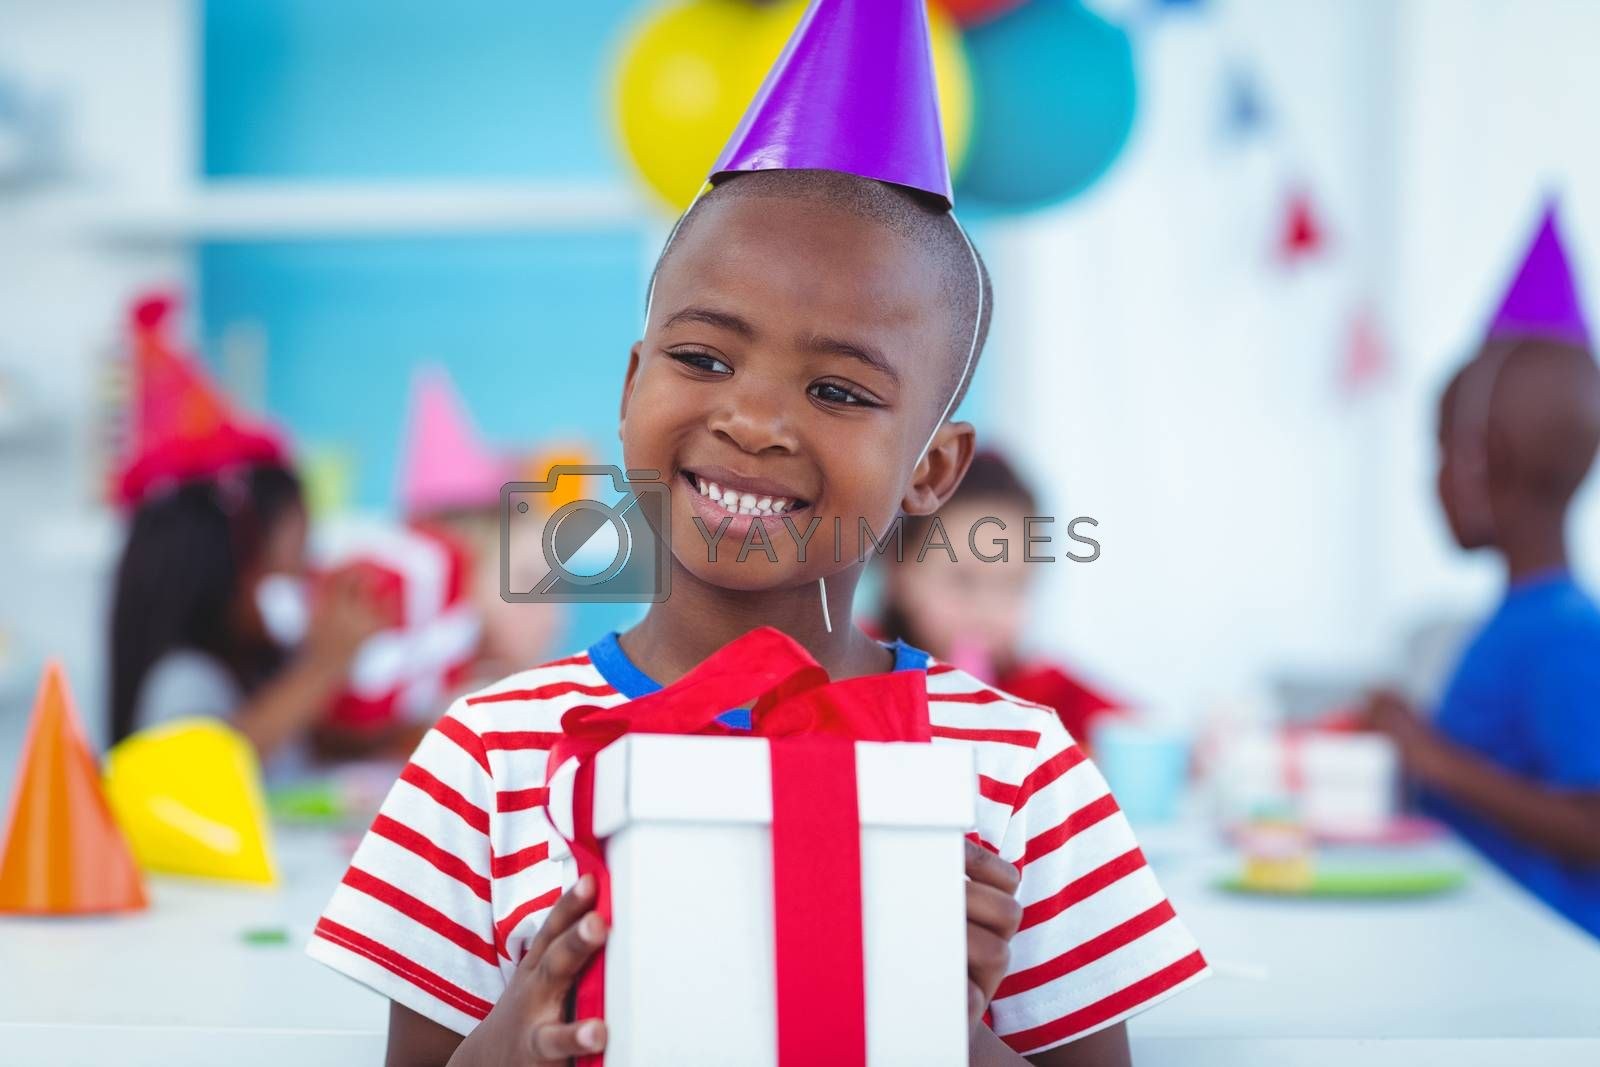 Happy kids at a birthday party about to open presents